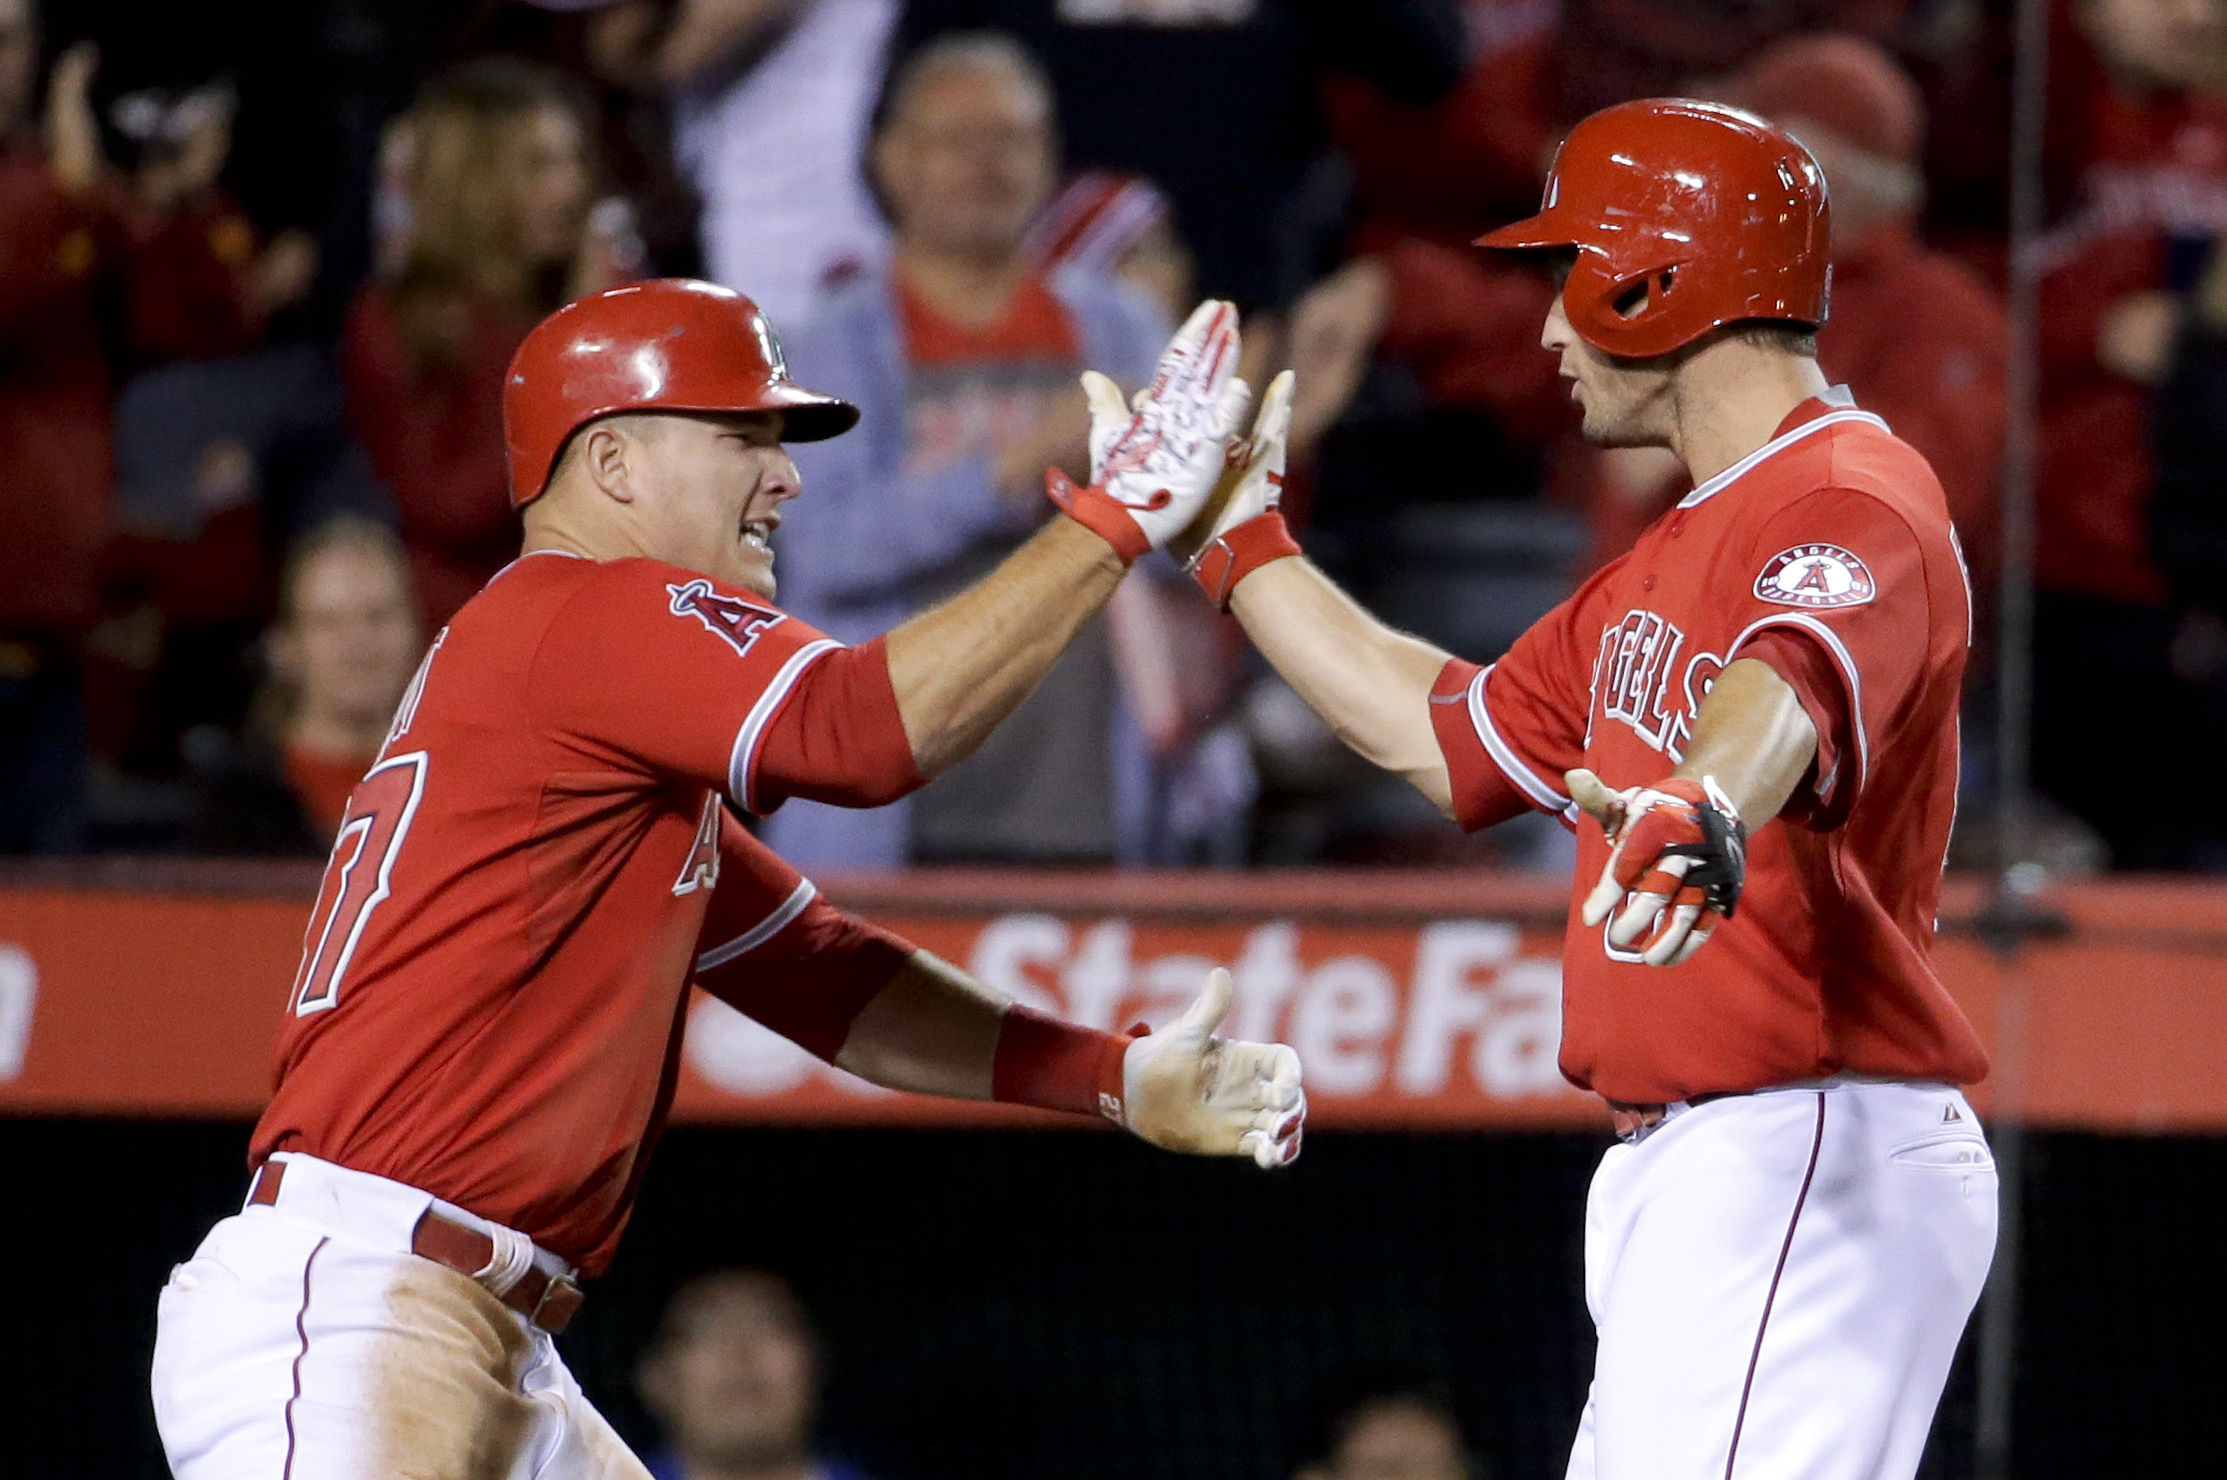 Los Angeles Angels' David Freese, right, celebrates his two-run home run with Mike Trout against the Texas Rangers during the seventh inning of a baseball game in Anaheim, Calif., Friday, April 24, 2015. (AP Photo/Chris Carlson)